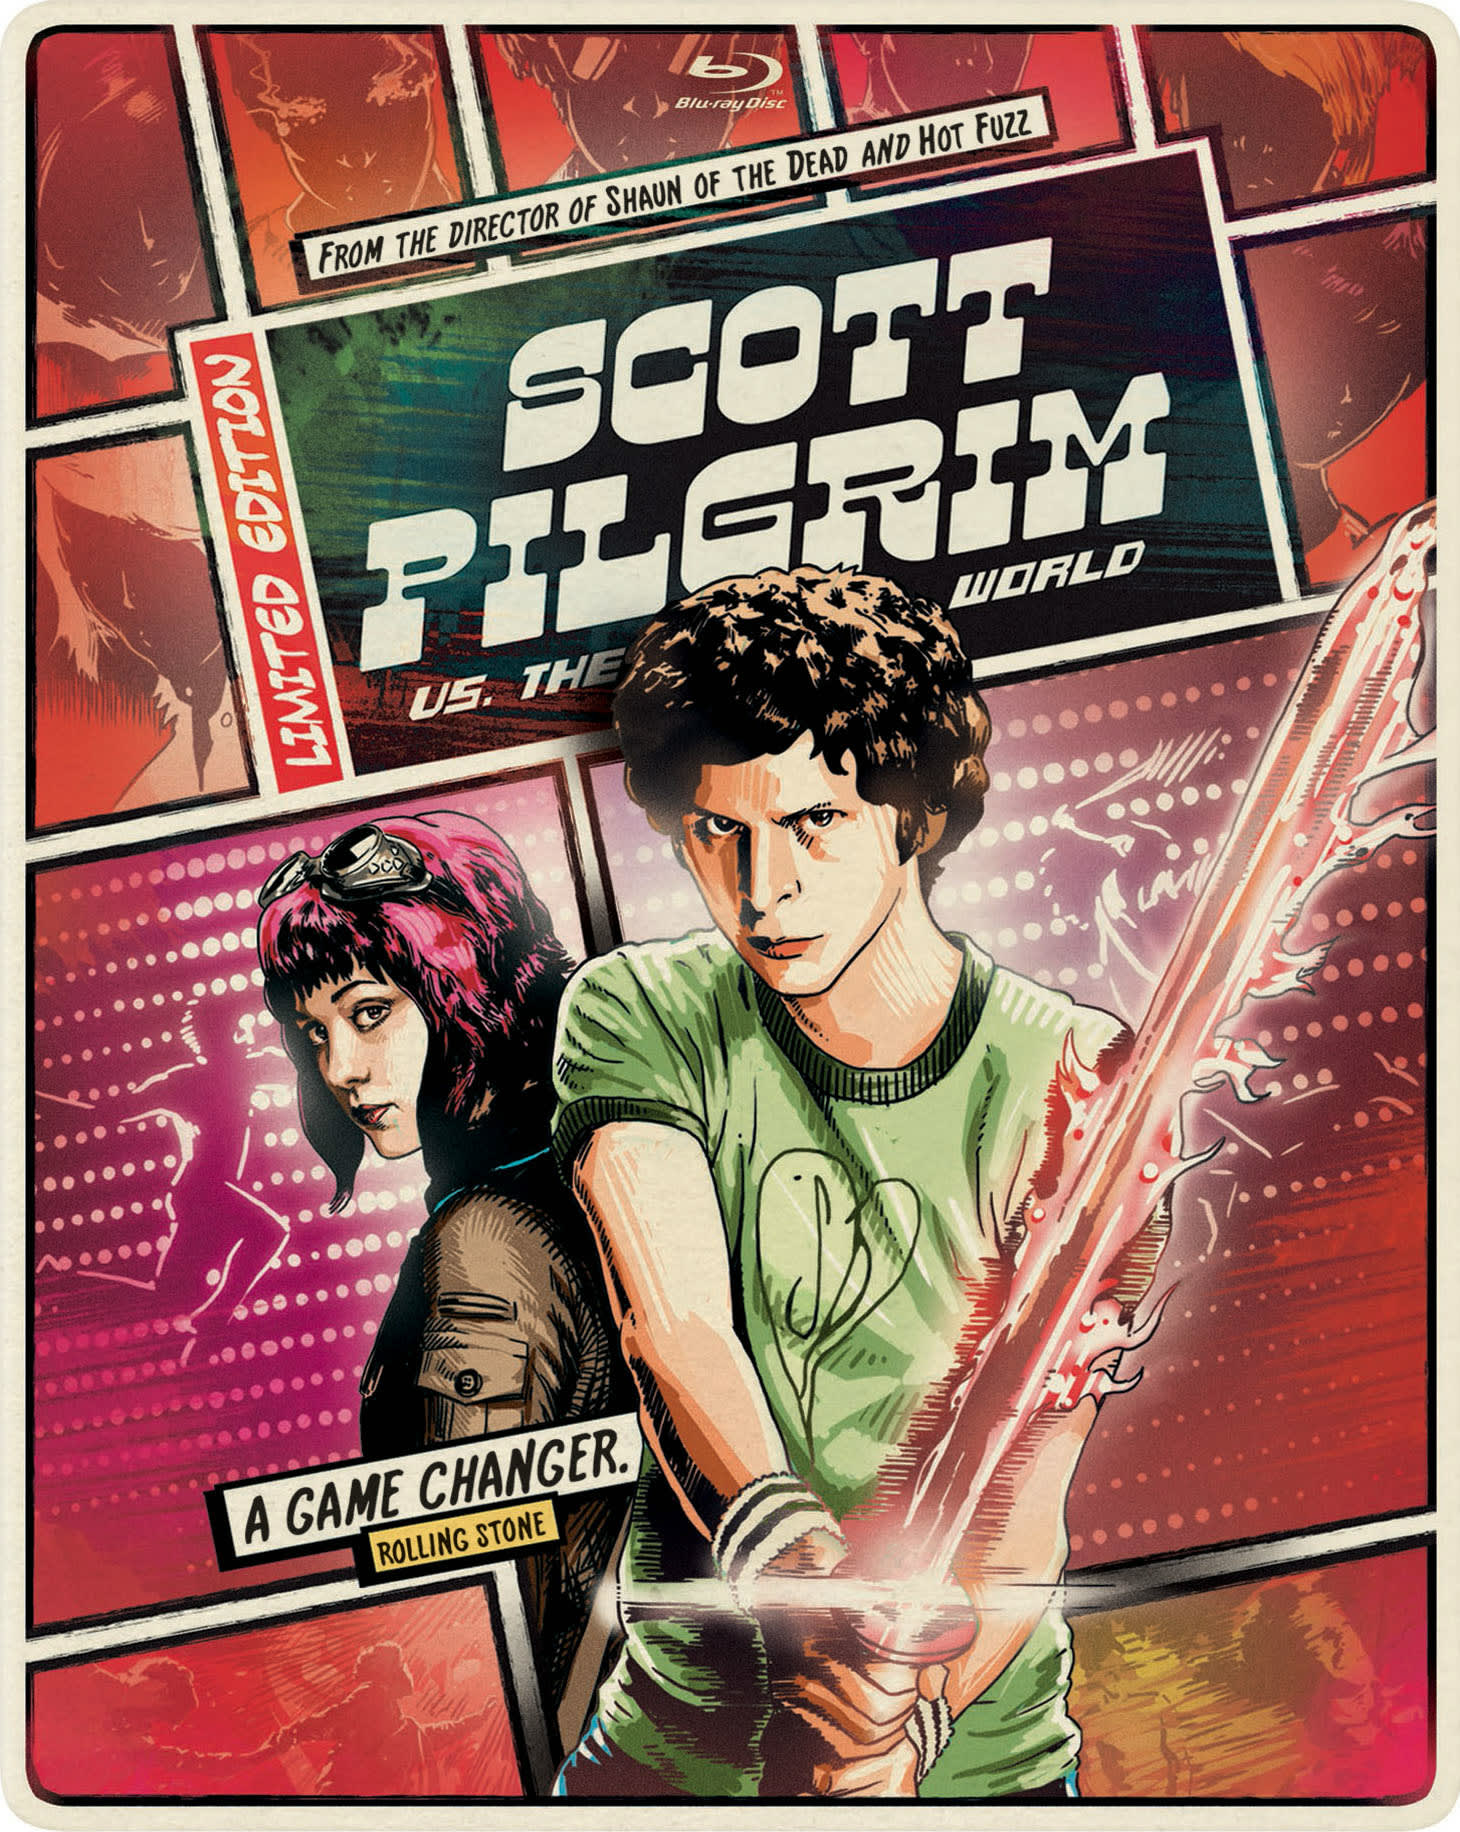 Scott Pilgrim Vs. The World (Limited Edition Steelbook) [Blu-ray]